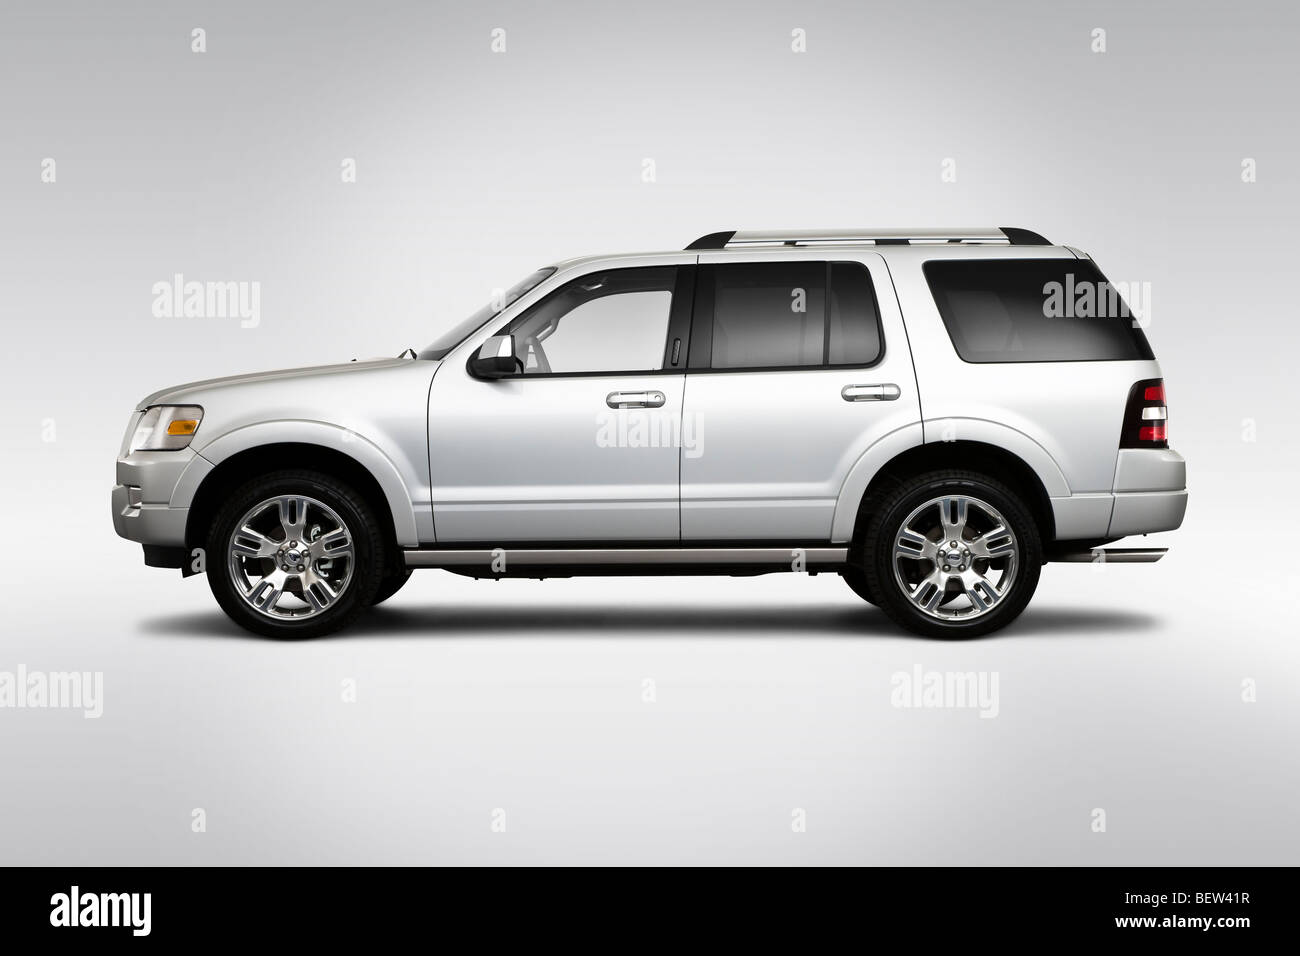 2010 ford explorer limited in silver drivers side profile stock image